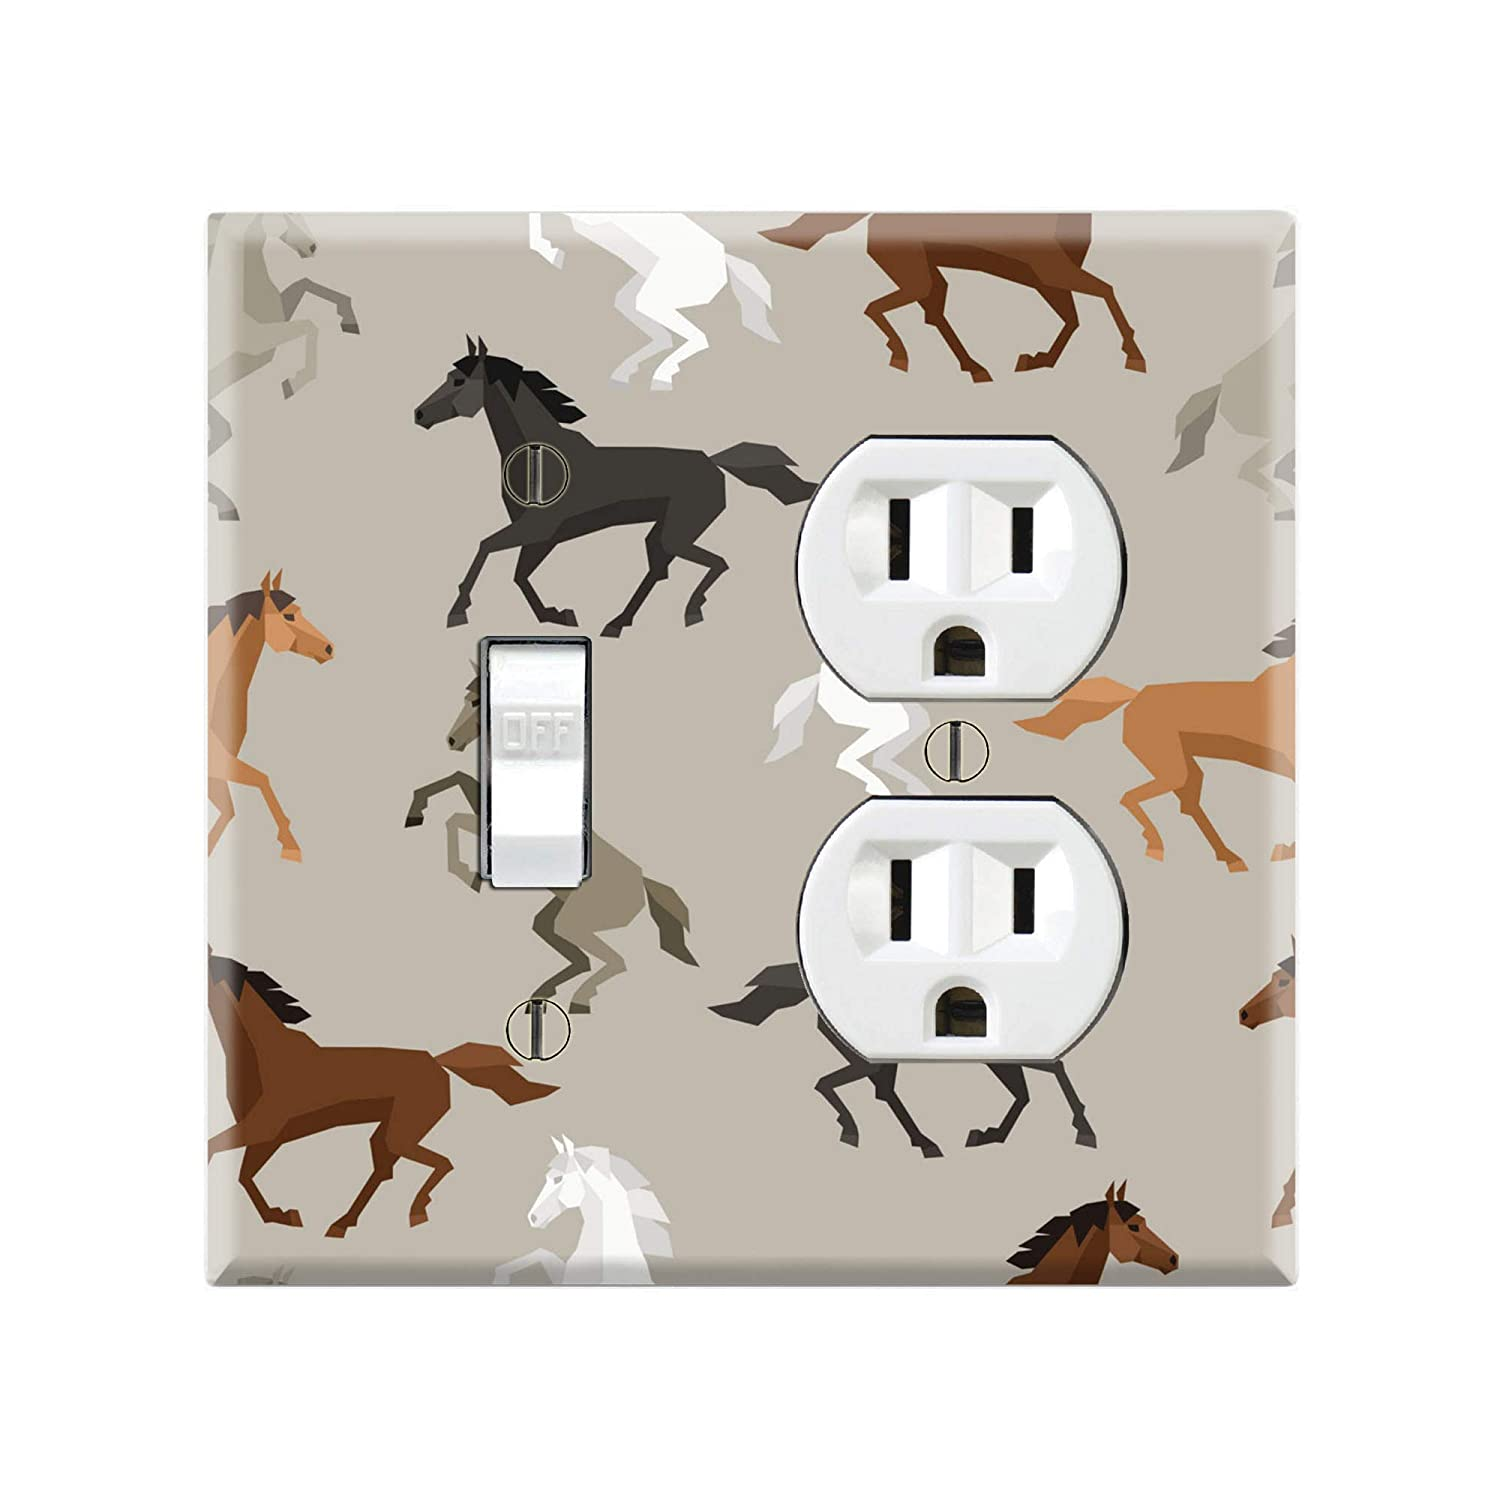 Black /& Brown Running Horse/'s Themed Light Switch Cover Choose Your Cover